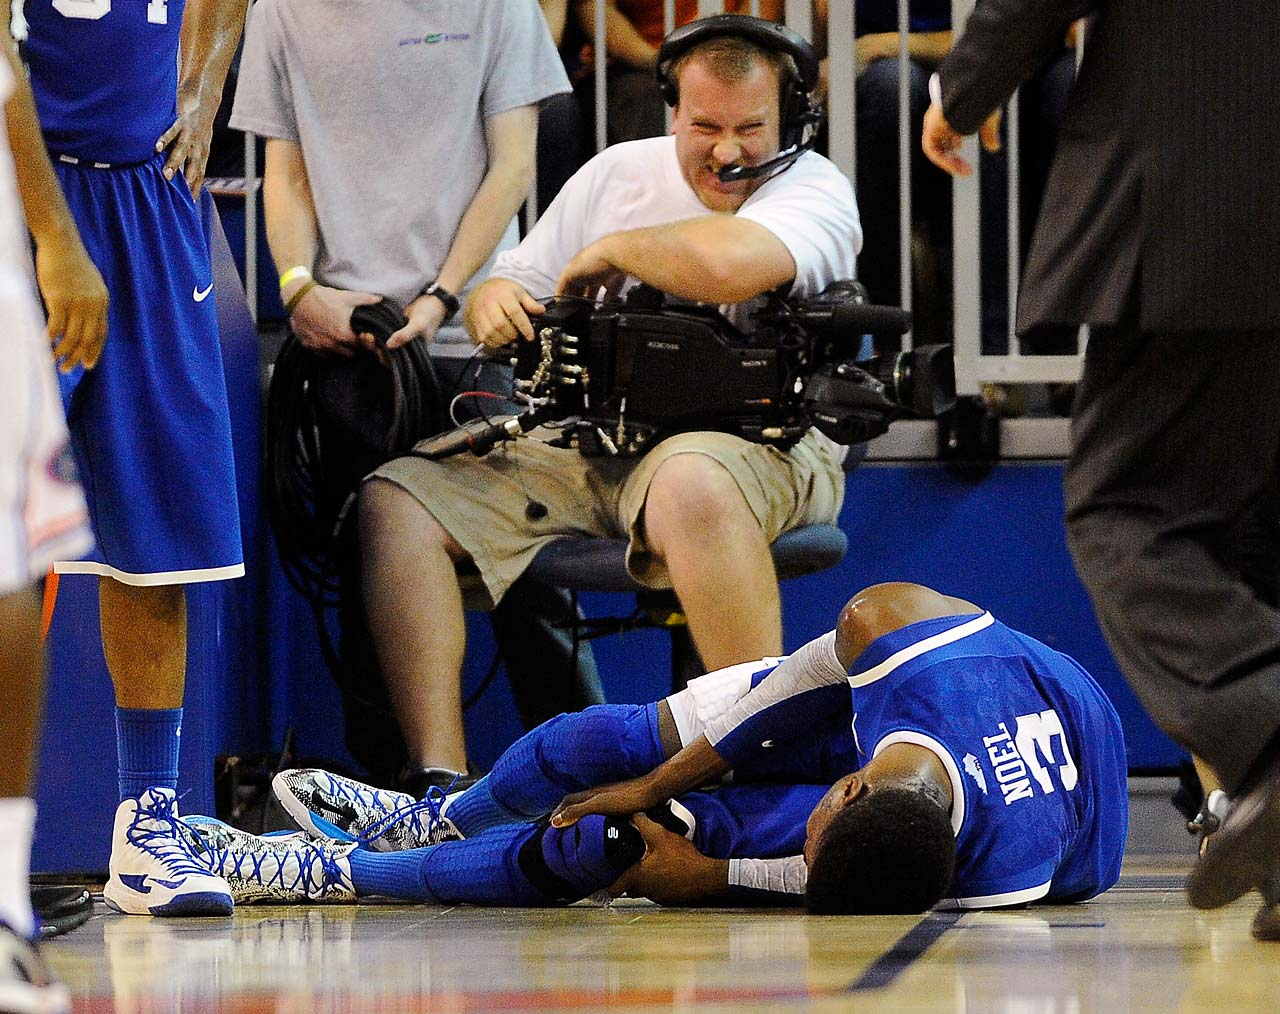 A cameraman grimmaces after a collision with Kentucky forward Nerlens Noel during the second half of an NCAA college basketball game against Florida in Gainesville, Fla., in February 2013.